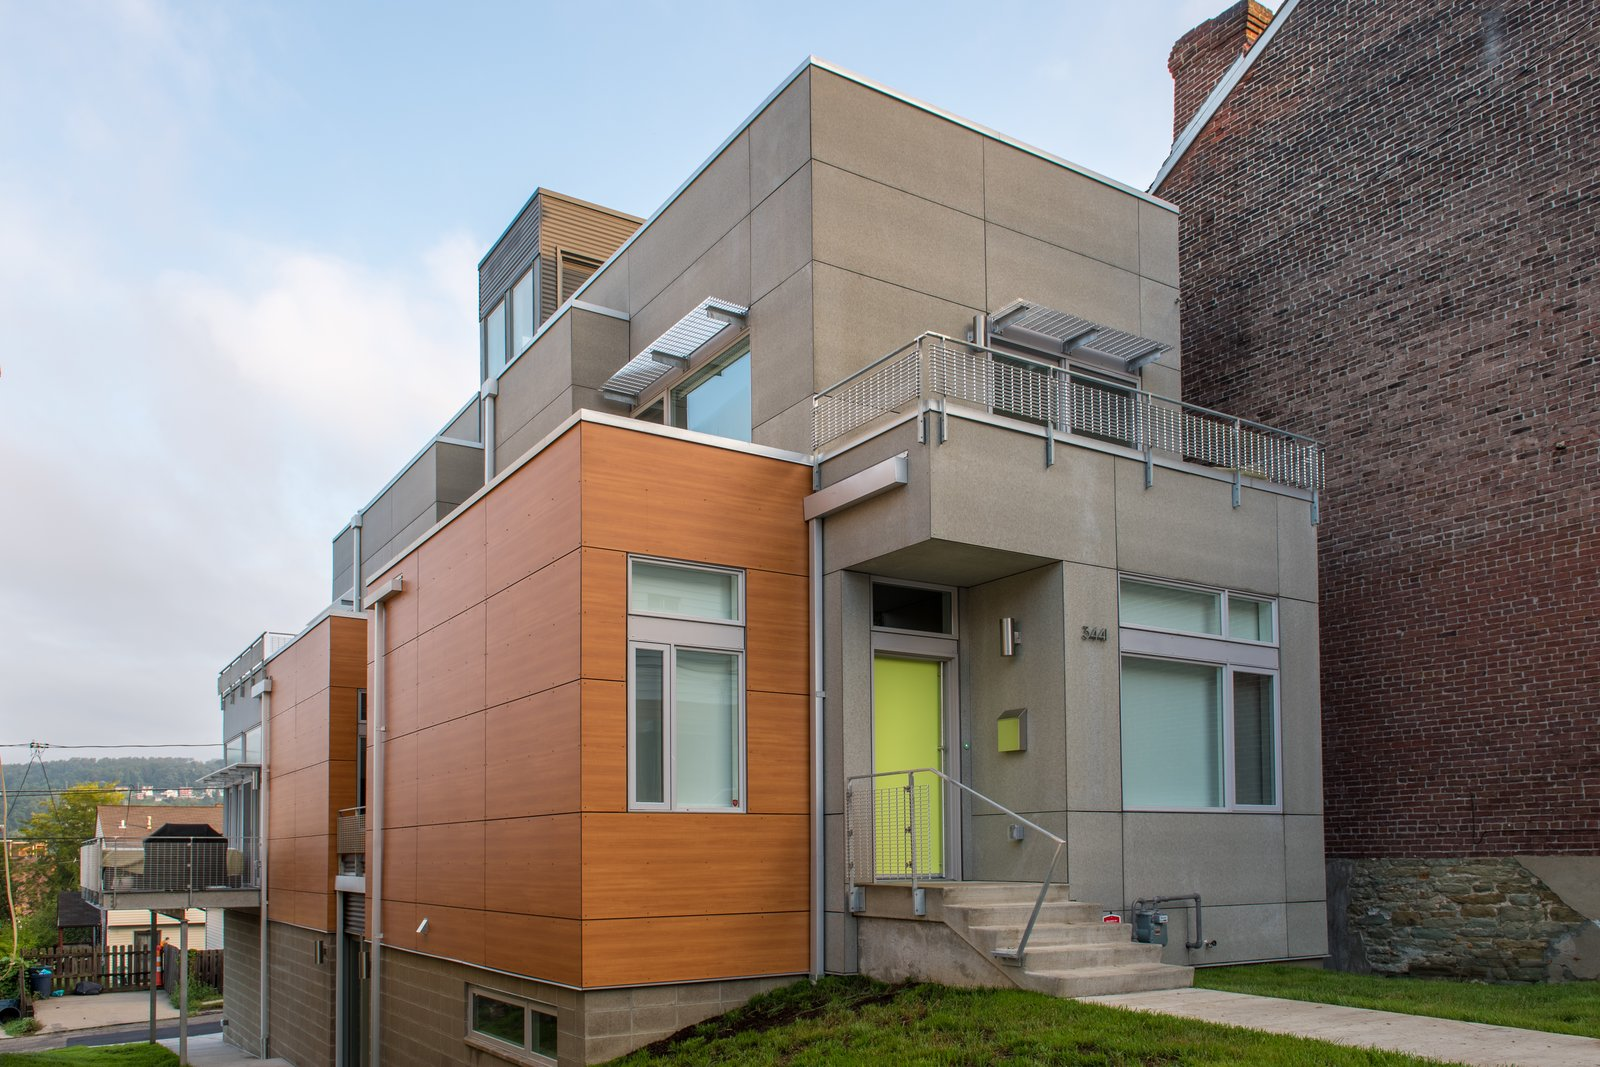 The massing of the Ligonier Street Residence largely consists of a narrow, articulated rectangular volume that is bisected by a custom central staircase that links all four levels of the 3,557 square foot home. The natural sloping topography of the site allows for access to the home at the lower basement level from an alley condition at the downhill property edge and at the first floor from the public street at the uphill property edge.